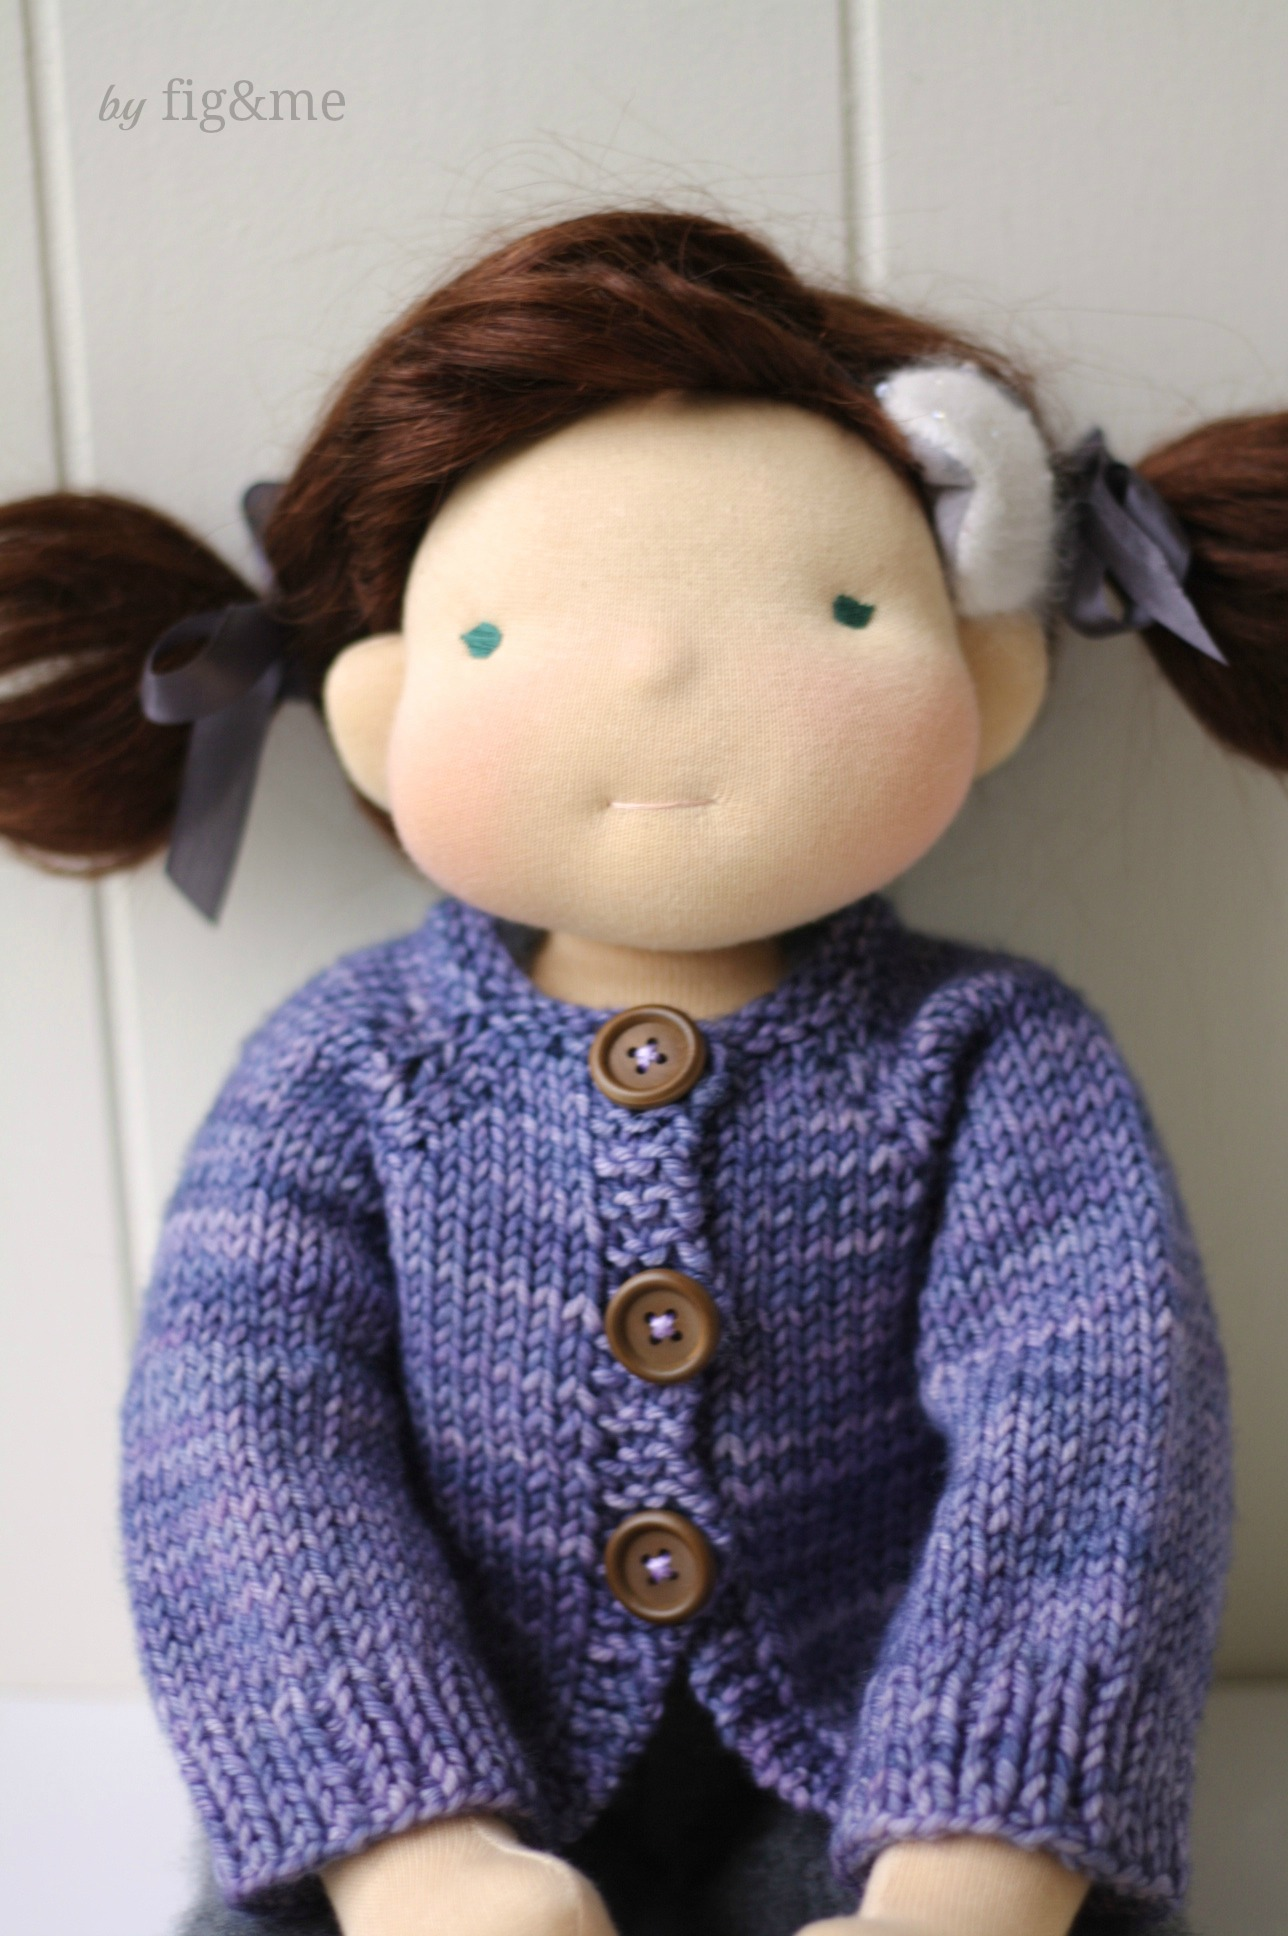 Plum Pudding knitting pattern by Fig and me.